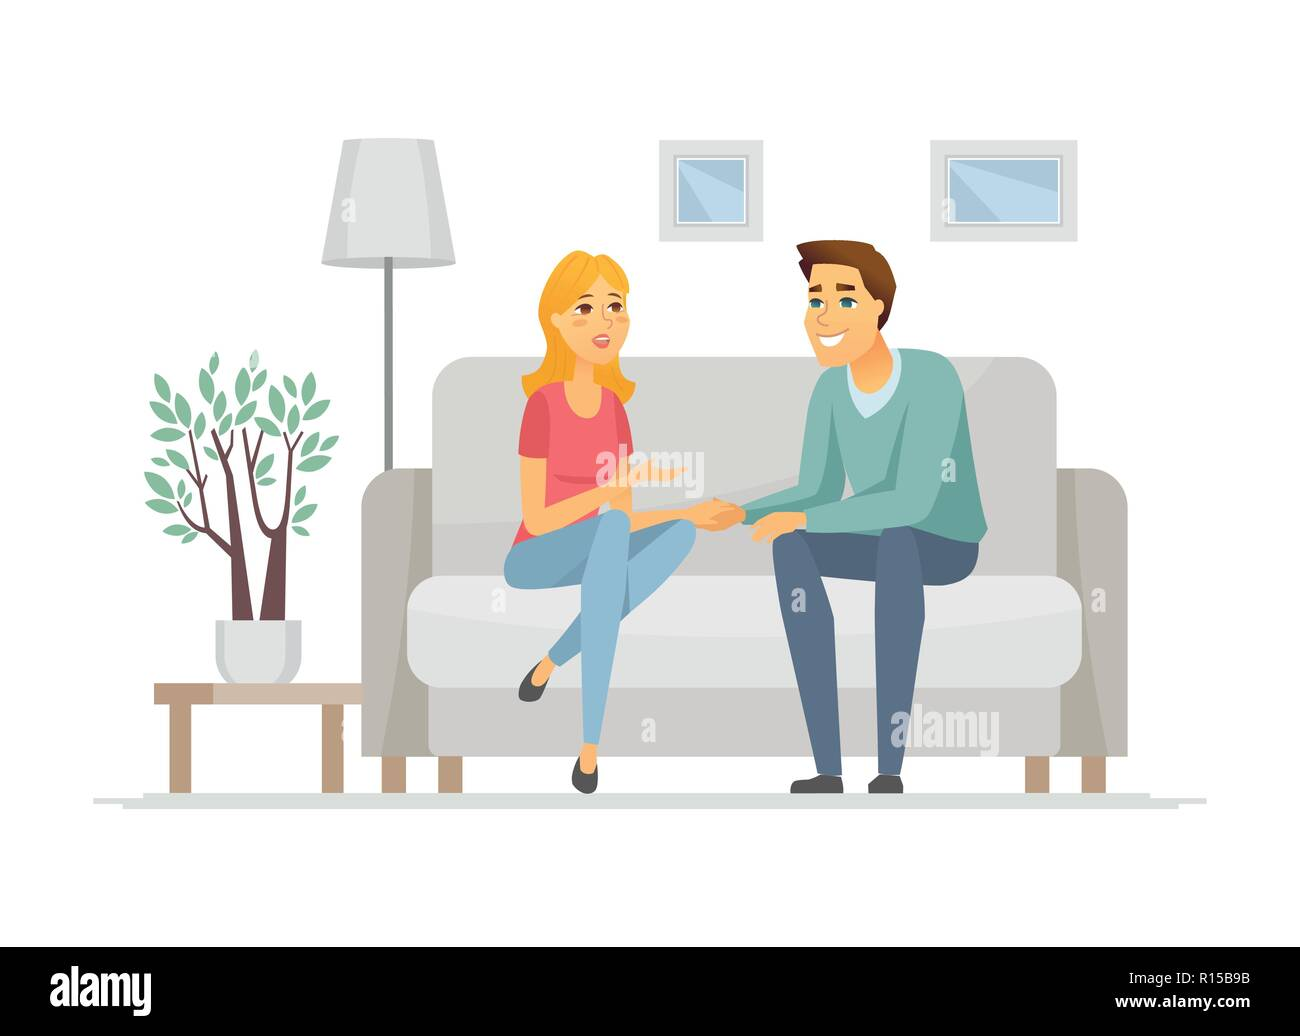 Young family talking - cartoon people characters illustration - Stock Vector